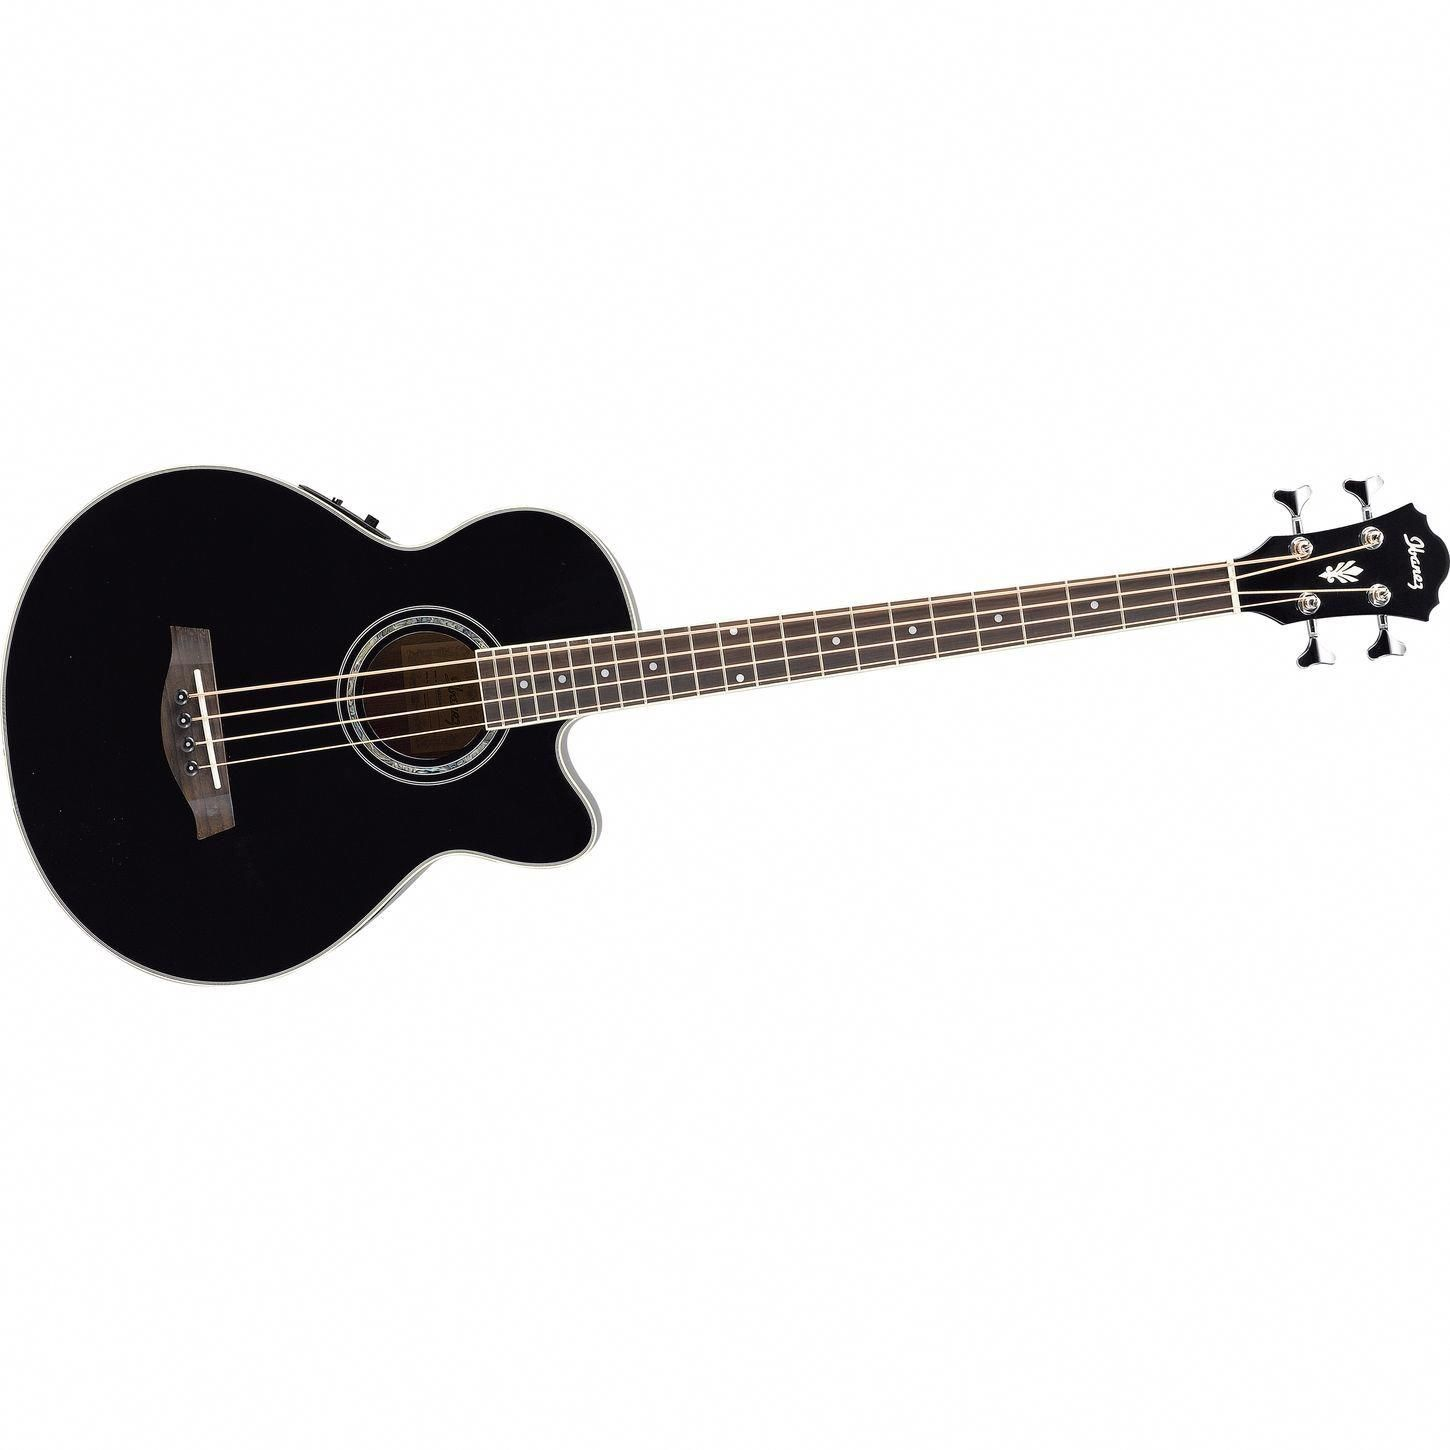 Ibanez Aeb10e Acoustic Electric Bass Guitar With Onboard Tuner Acoustic Electric Acoustic Bass Electric Bass